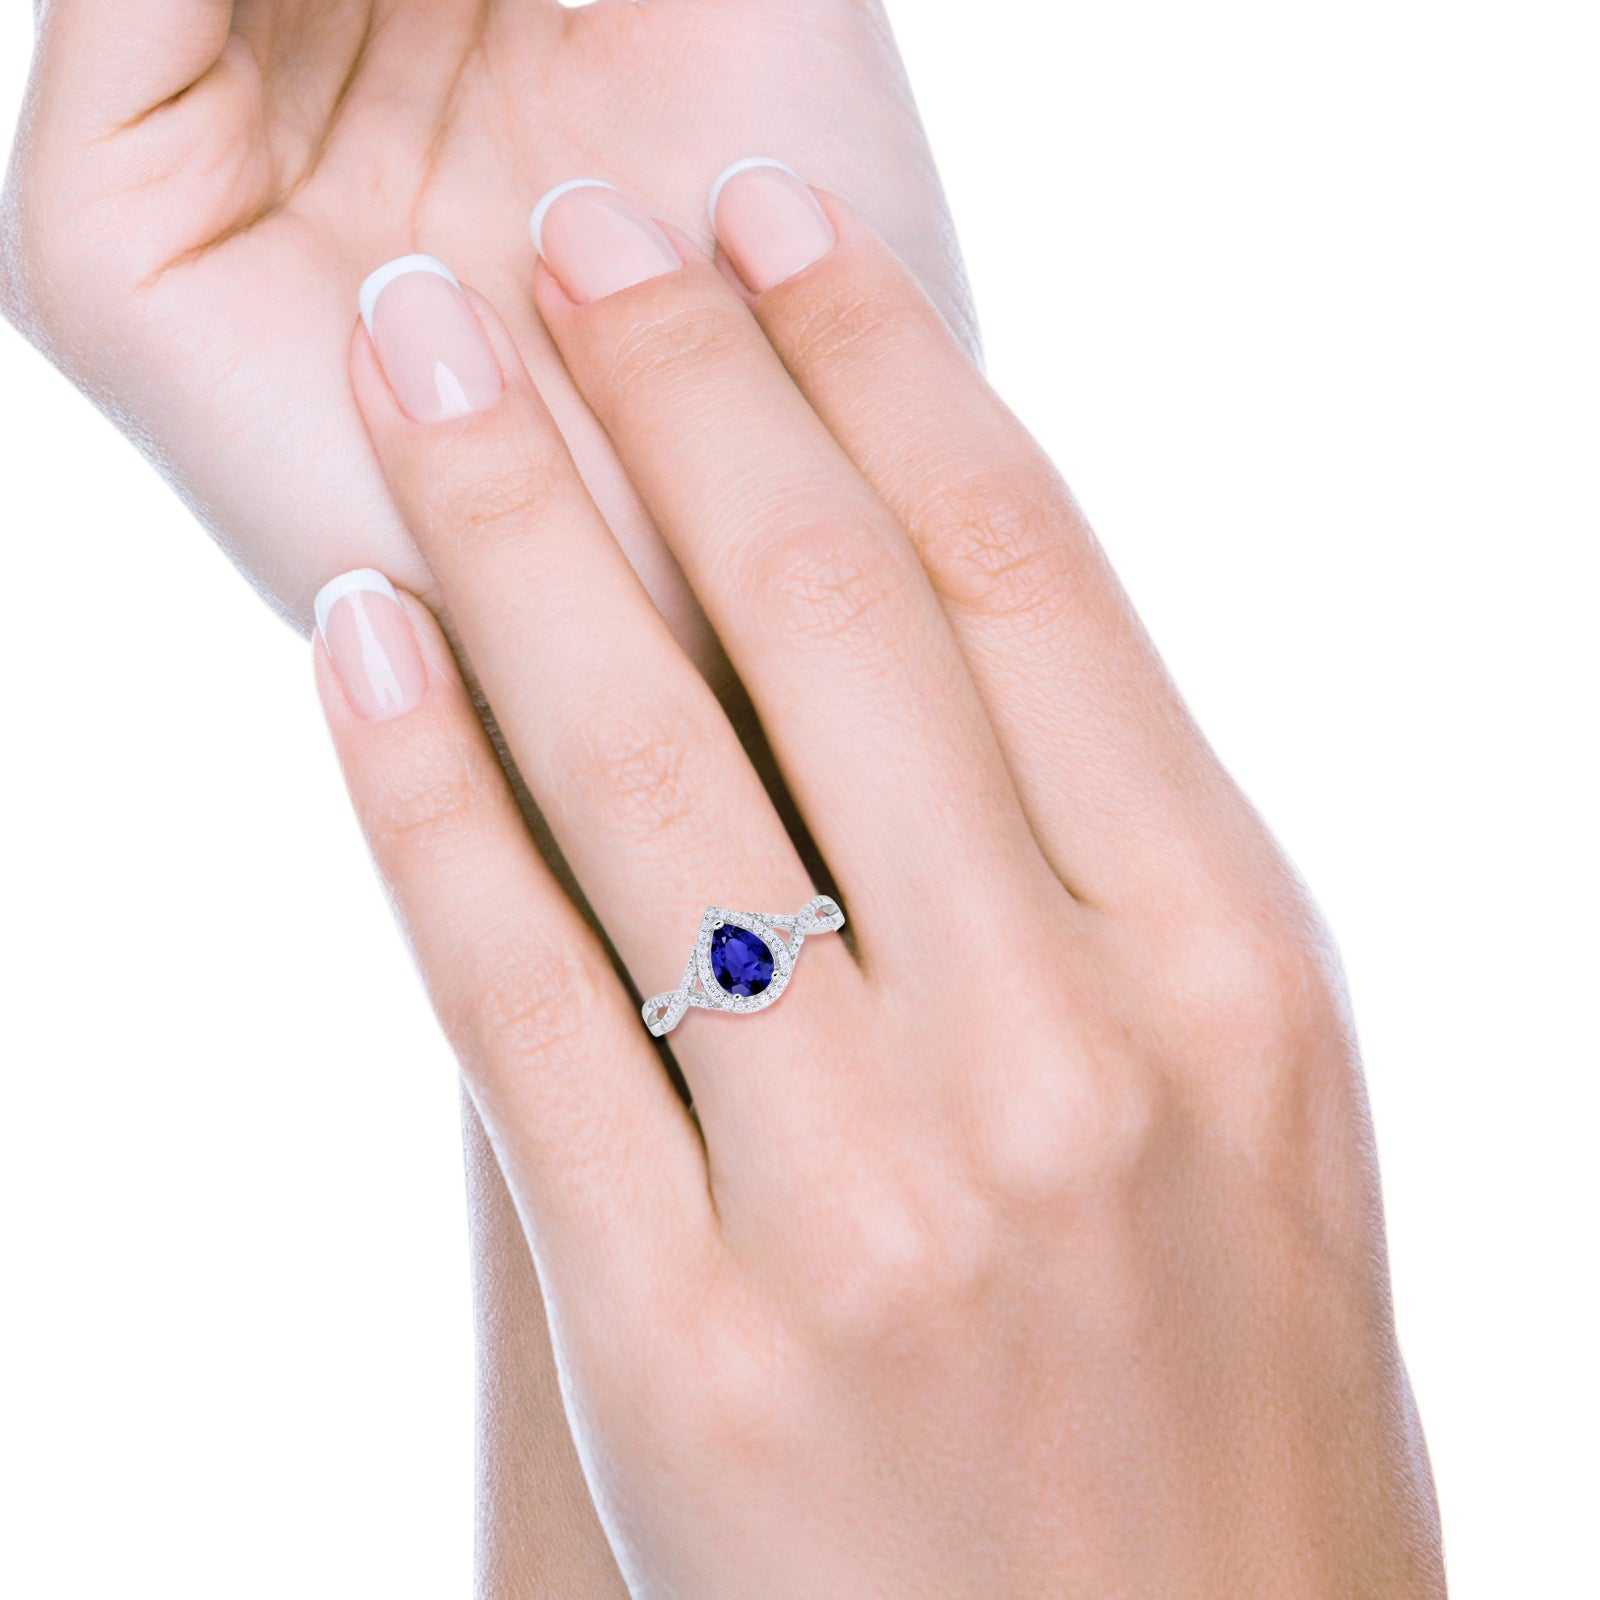 Teardrop Wedding Promise Ring Infinity Round Simulated Blue Sapphire CZ 925 Sterling Silver